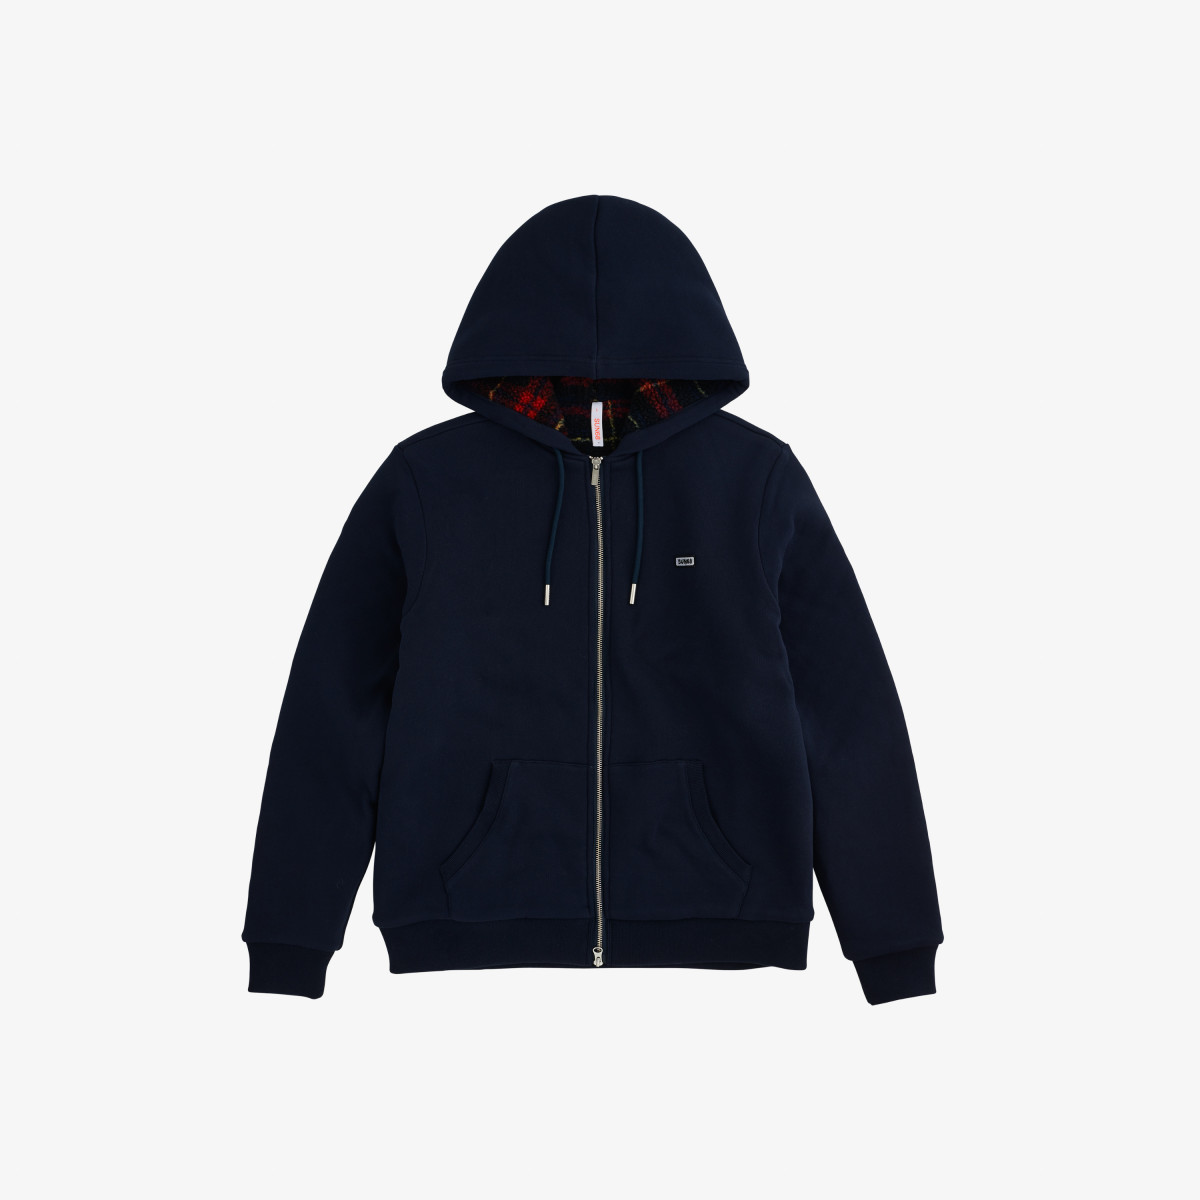 BOY'S HOOD INSIDE BEAR COTT.FL NAVY BLUE